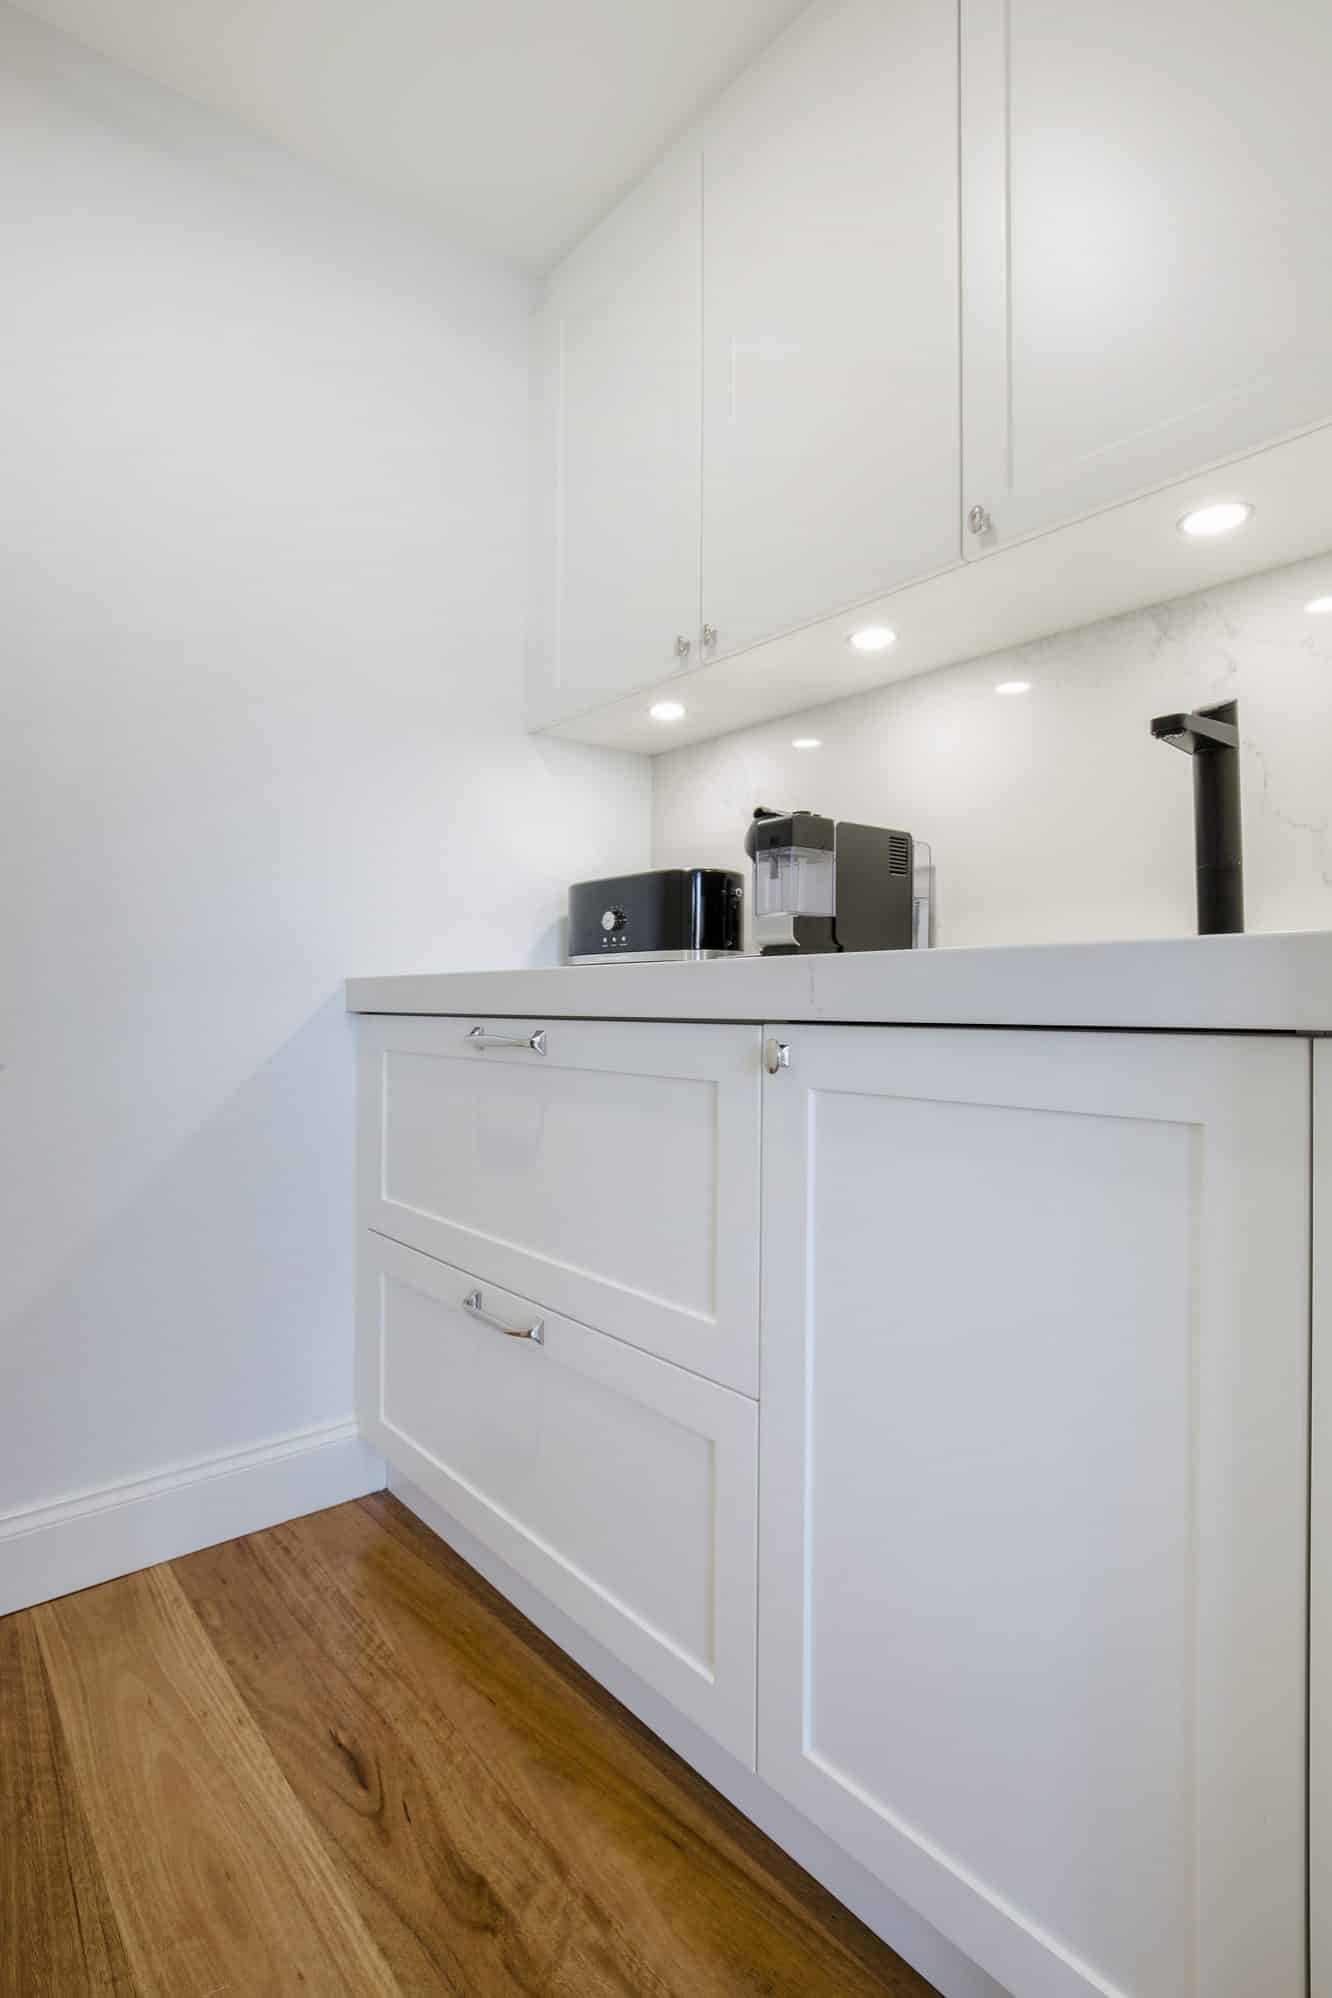 Small scullery for benchtop appliances and coffee making